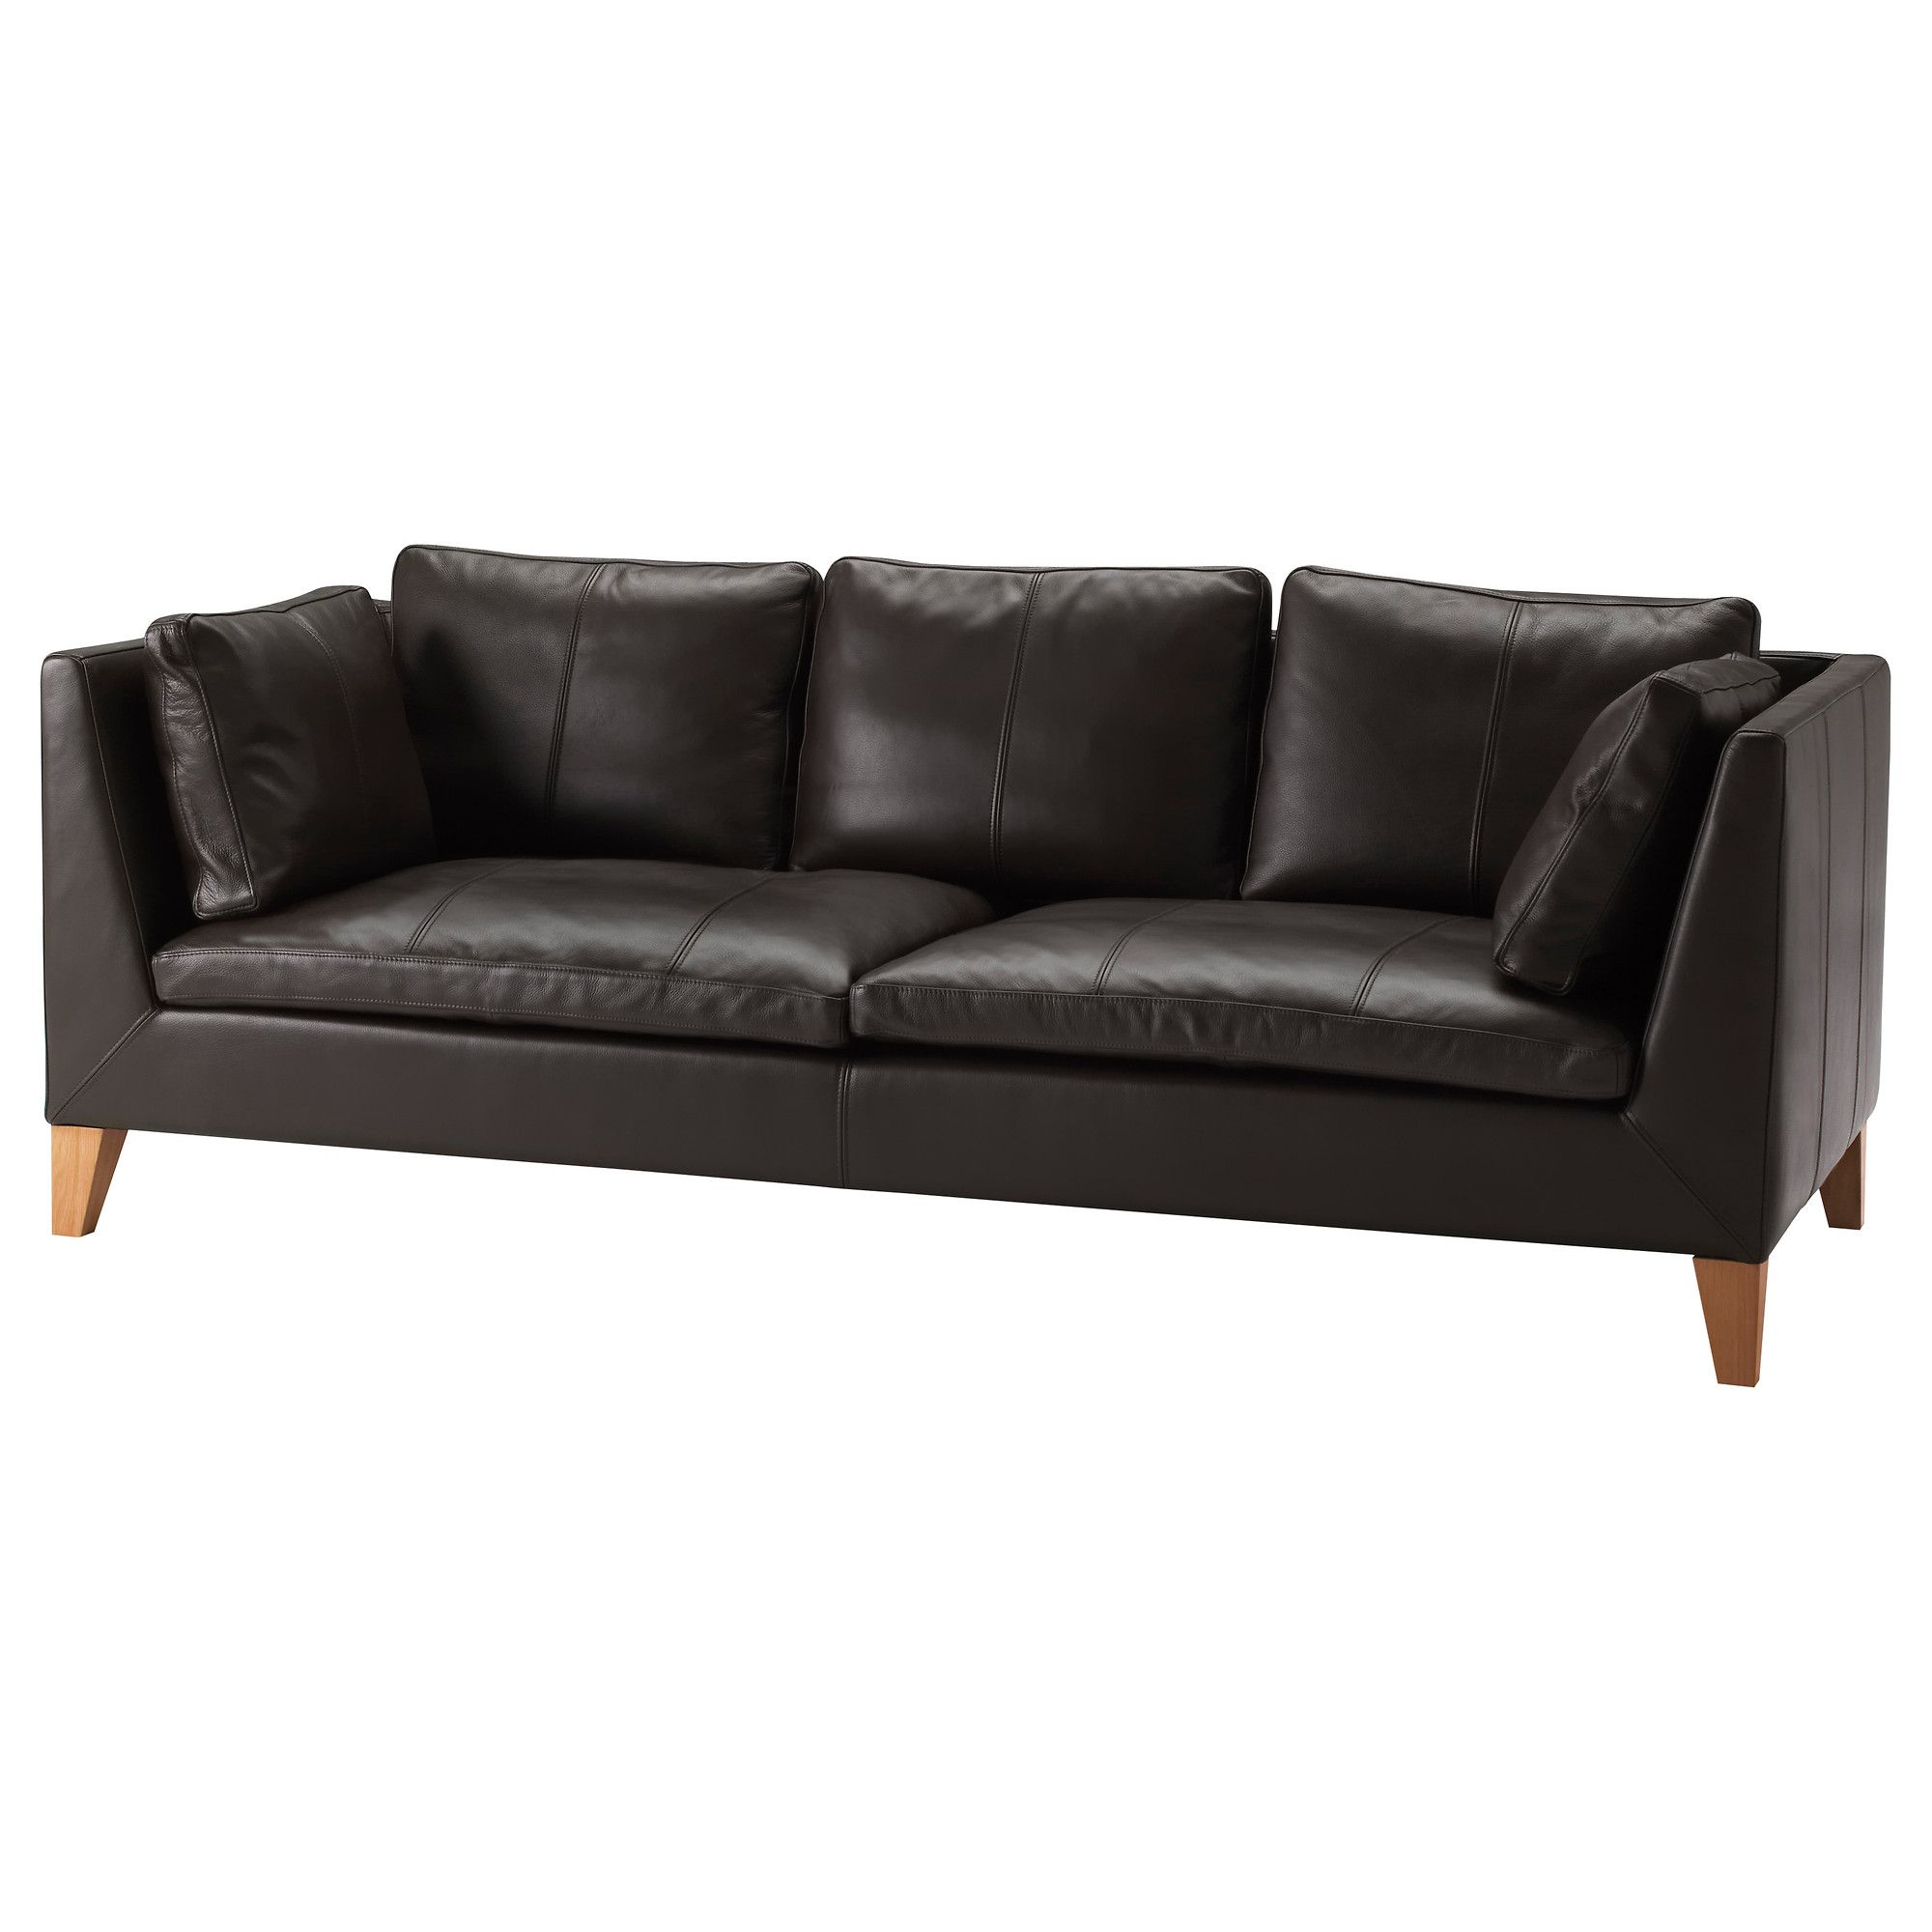 IKEA STOCKHOLM Sofa   Elegant Dark Brown   IKEA